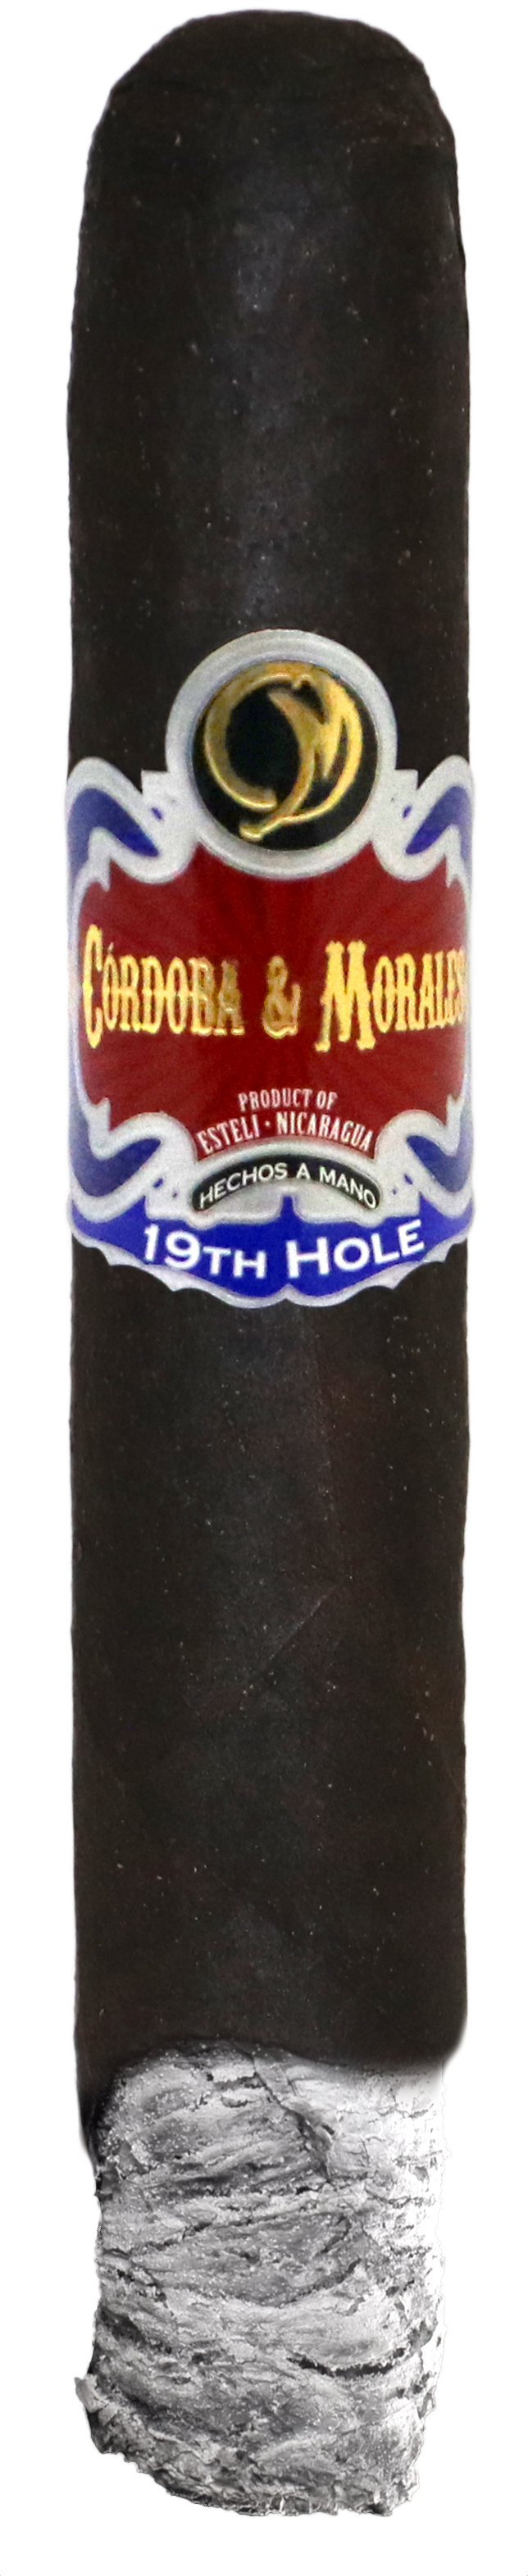 19th Hole Maduro